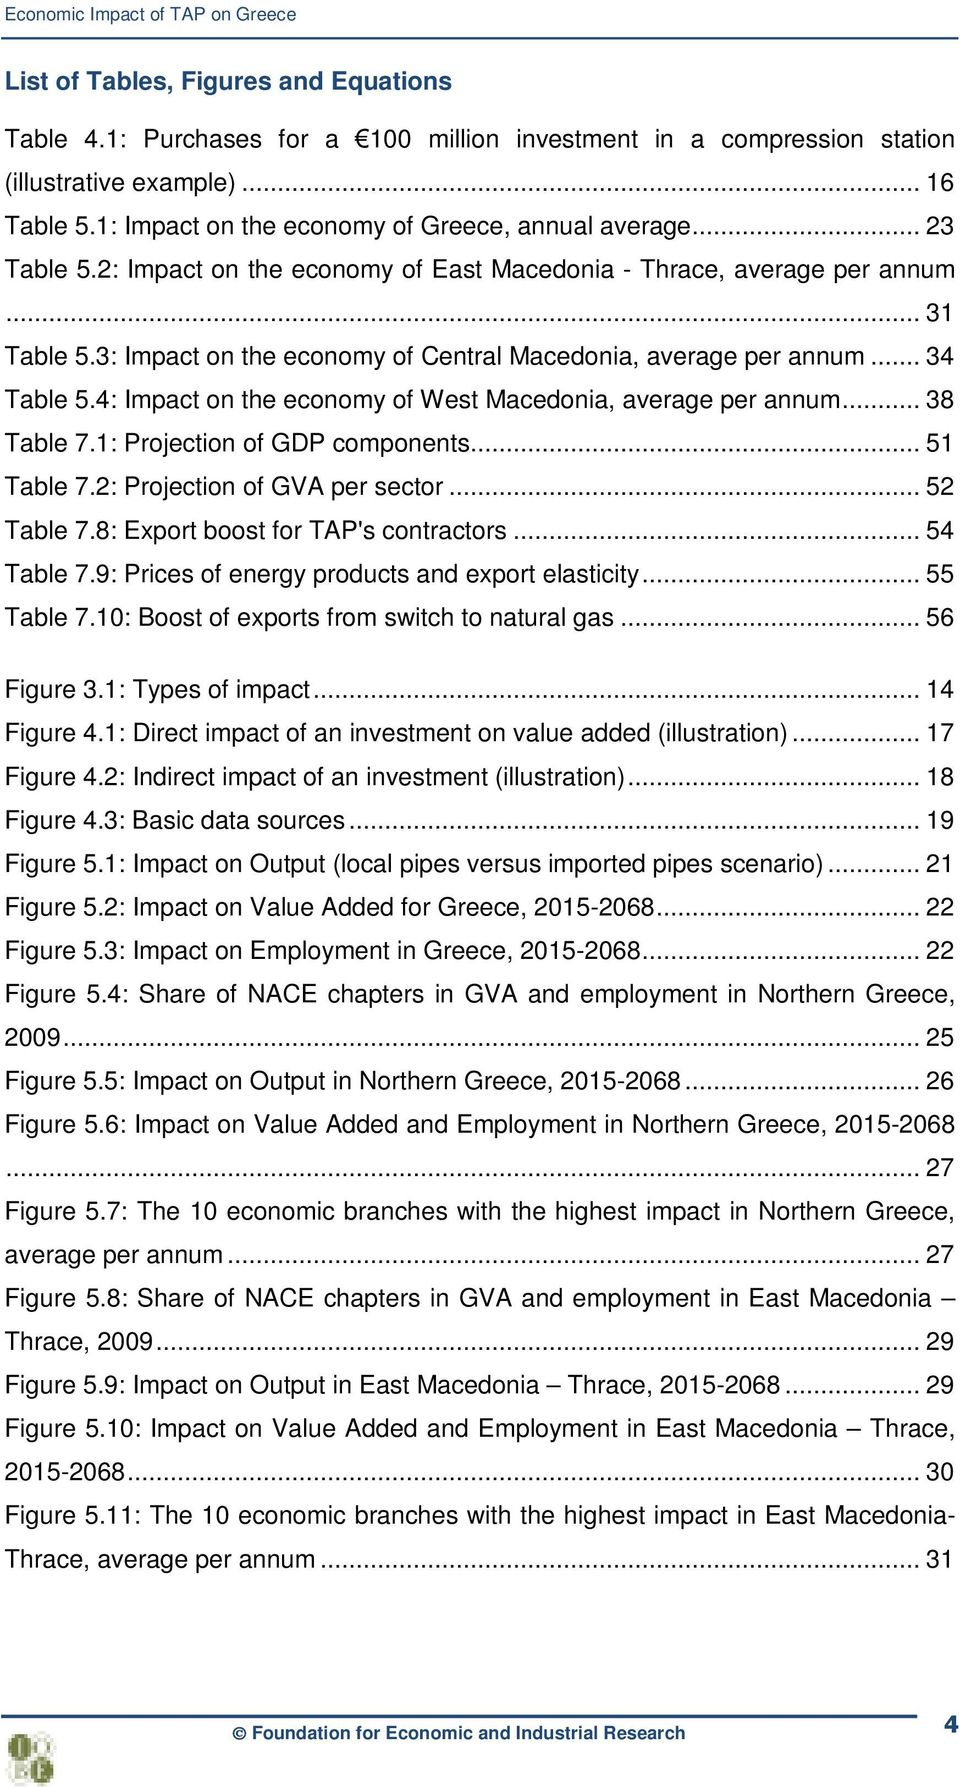 3: Impact on the economy of Central Macedonia, average per annum... 34 Table 5.4: Impact on the economy of West Macedonia, average per annum... 38 Table 7.1: Projection of GDP components... 51 Table 7.